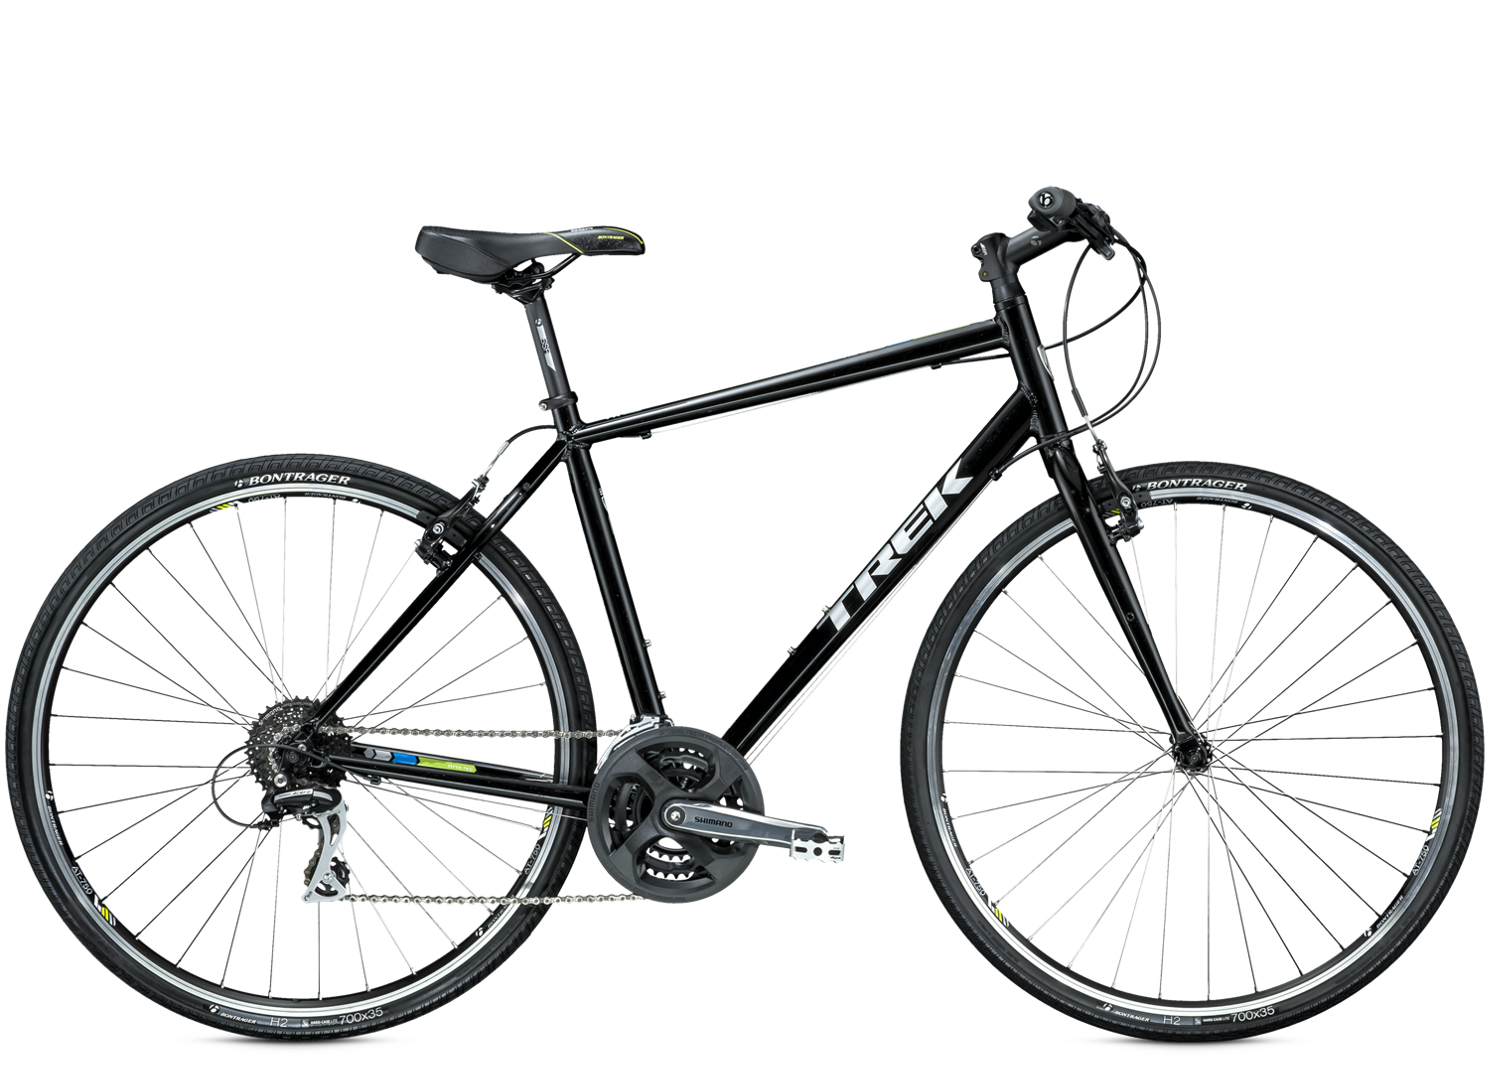 7 2 Fx Duotrap S Trek Bicycle Just Got This Bike And Love It